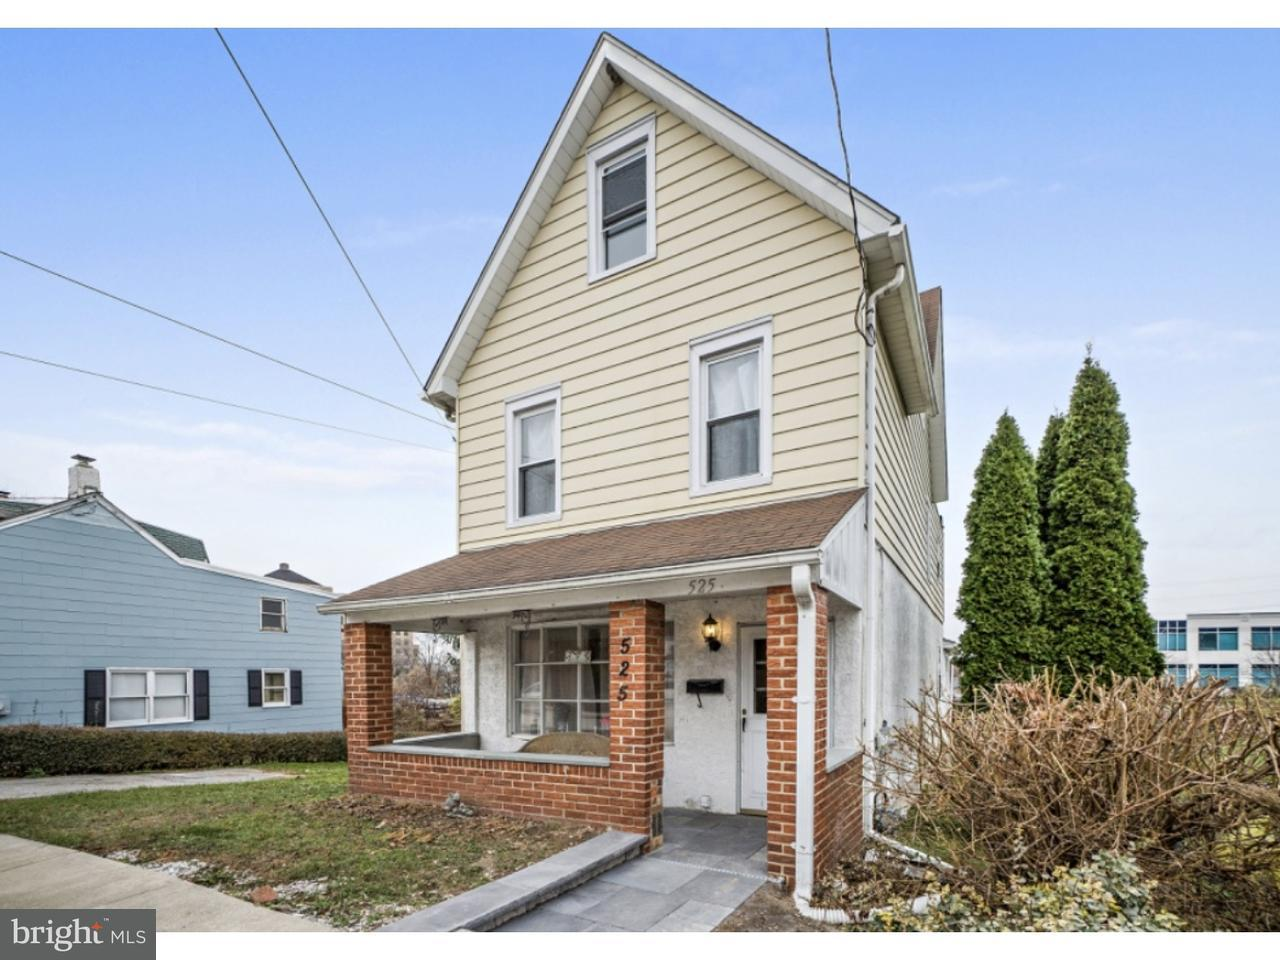 Single Family Home for Sale at 525 SMILEY Street Crum Lynne, Pennsylvania 19022 United States